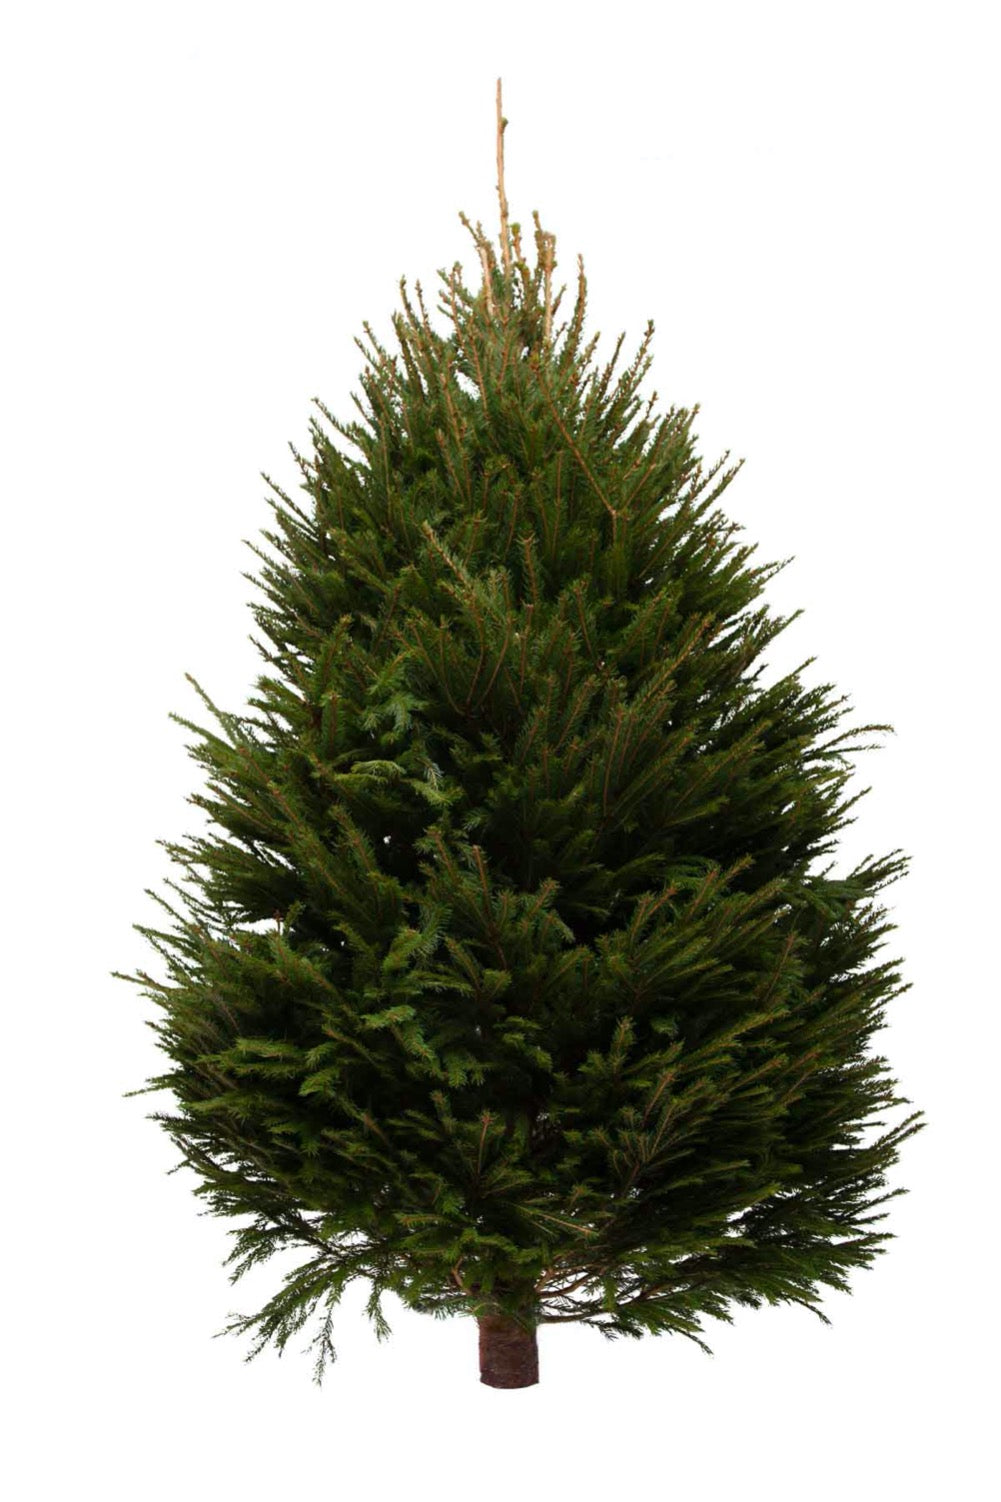 4ft Norway Spruce from Pines and Needles